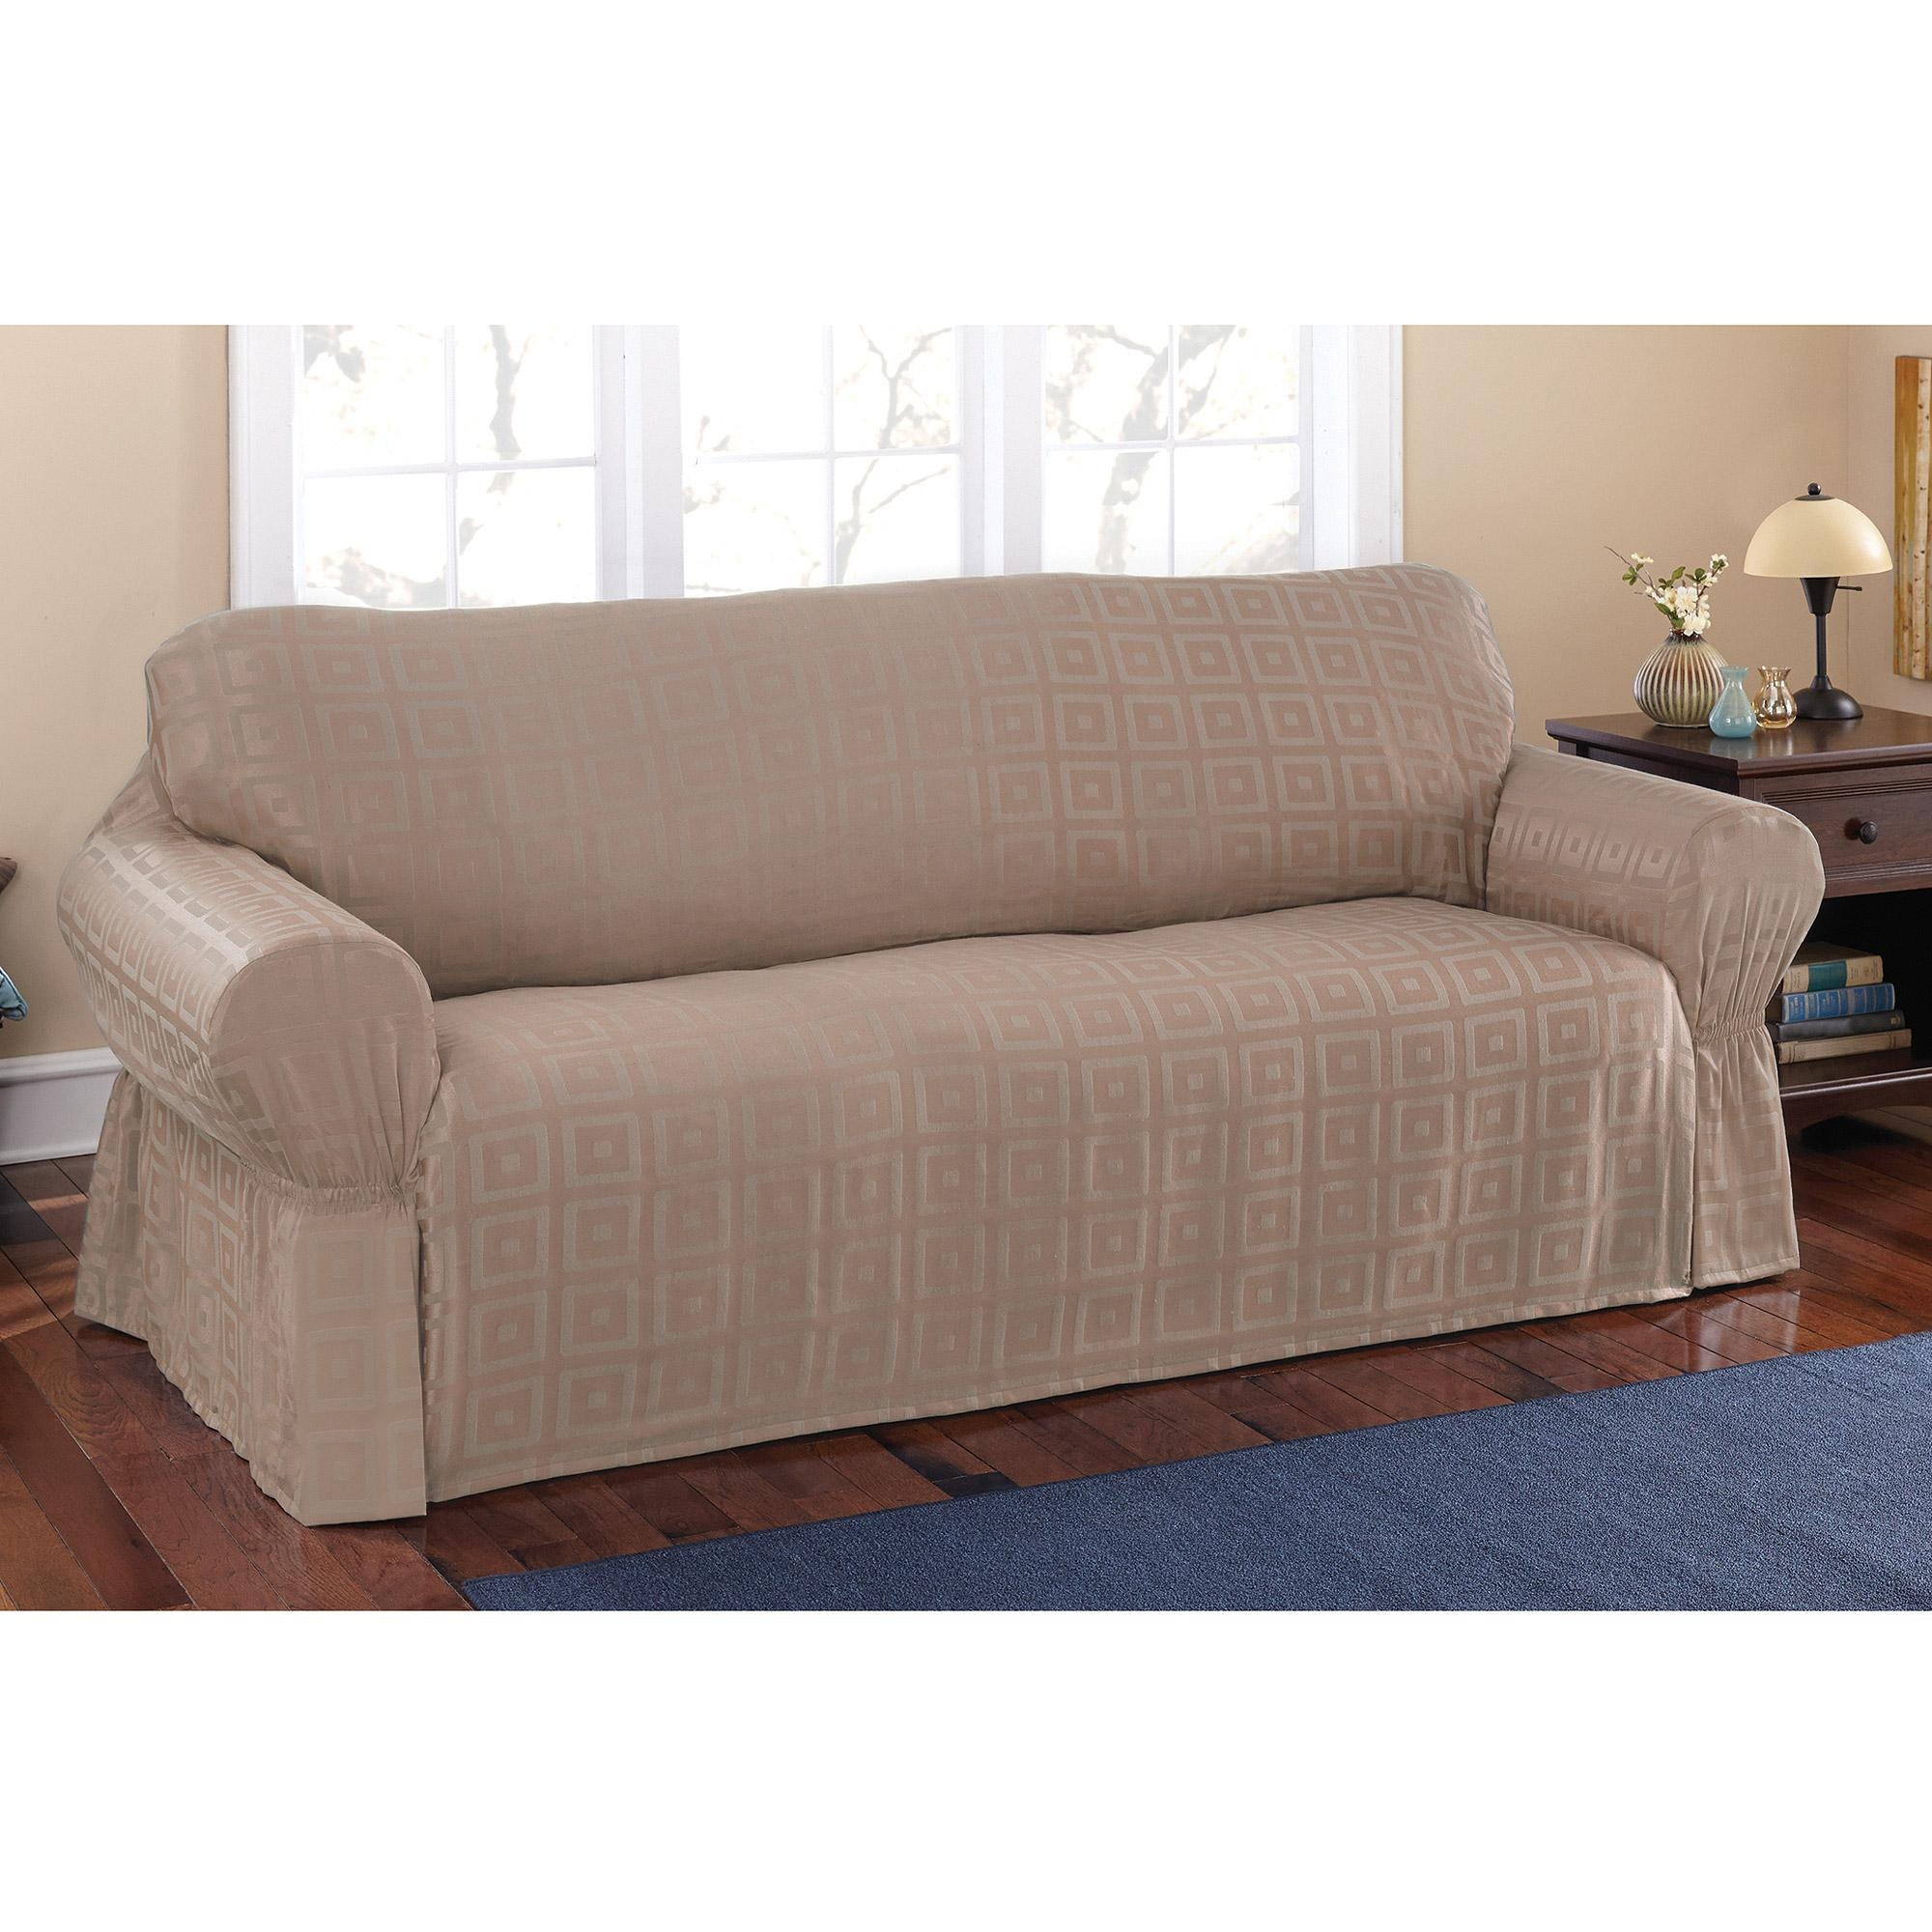 leather couch covers 20 best ideas armless sofa slipcovers sofa ideas 30315